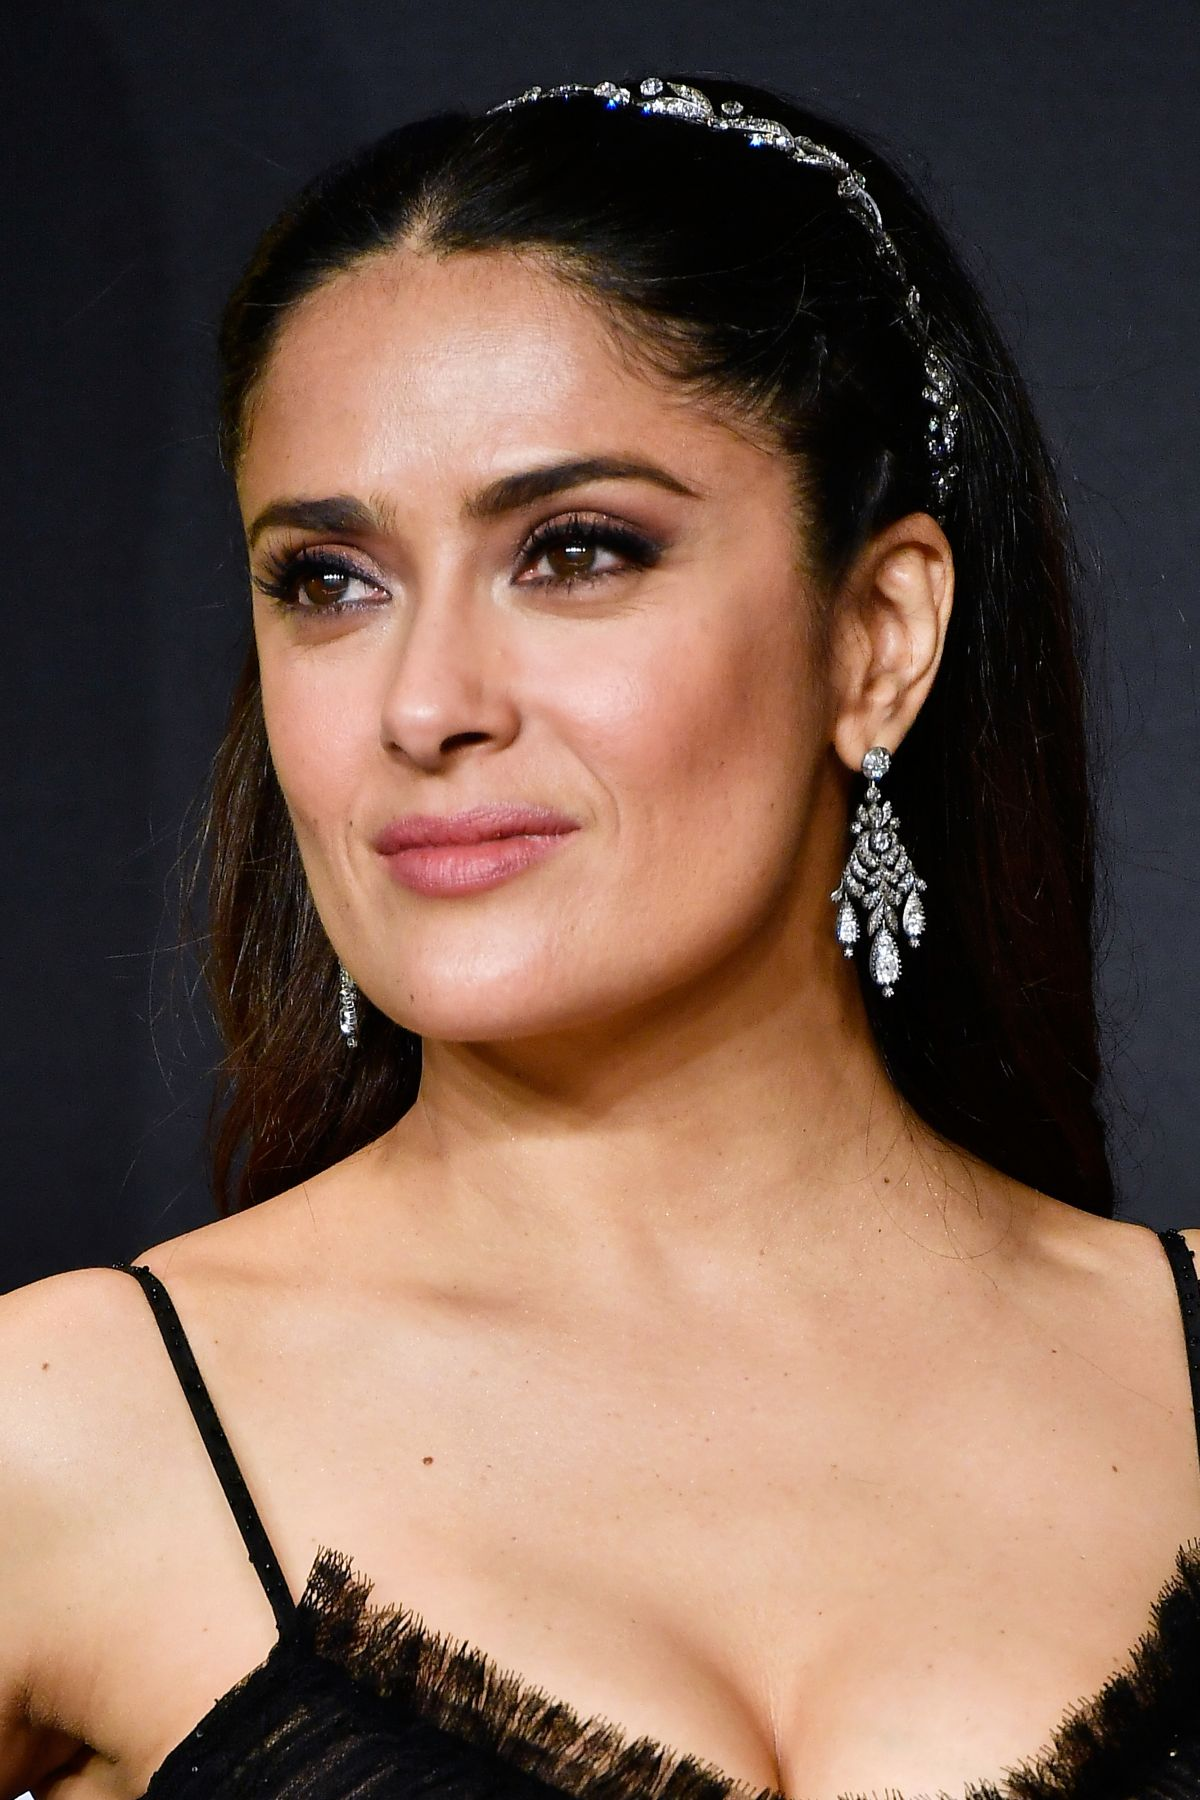 HOLLYWOOD, CA - FEBRUARY 26: Actor Salma Hayek poses in the press room during the 89th Annual Academy Awards at Hollywood & Highland Center on February 26, 2017 in Hollywood, California. Frazer Harrison/Getty Images/AFP